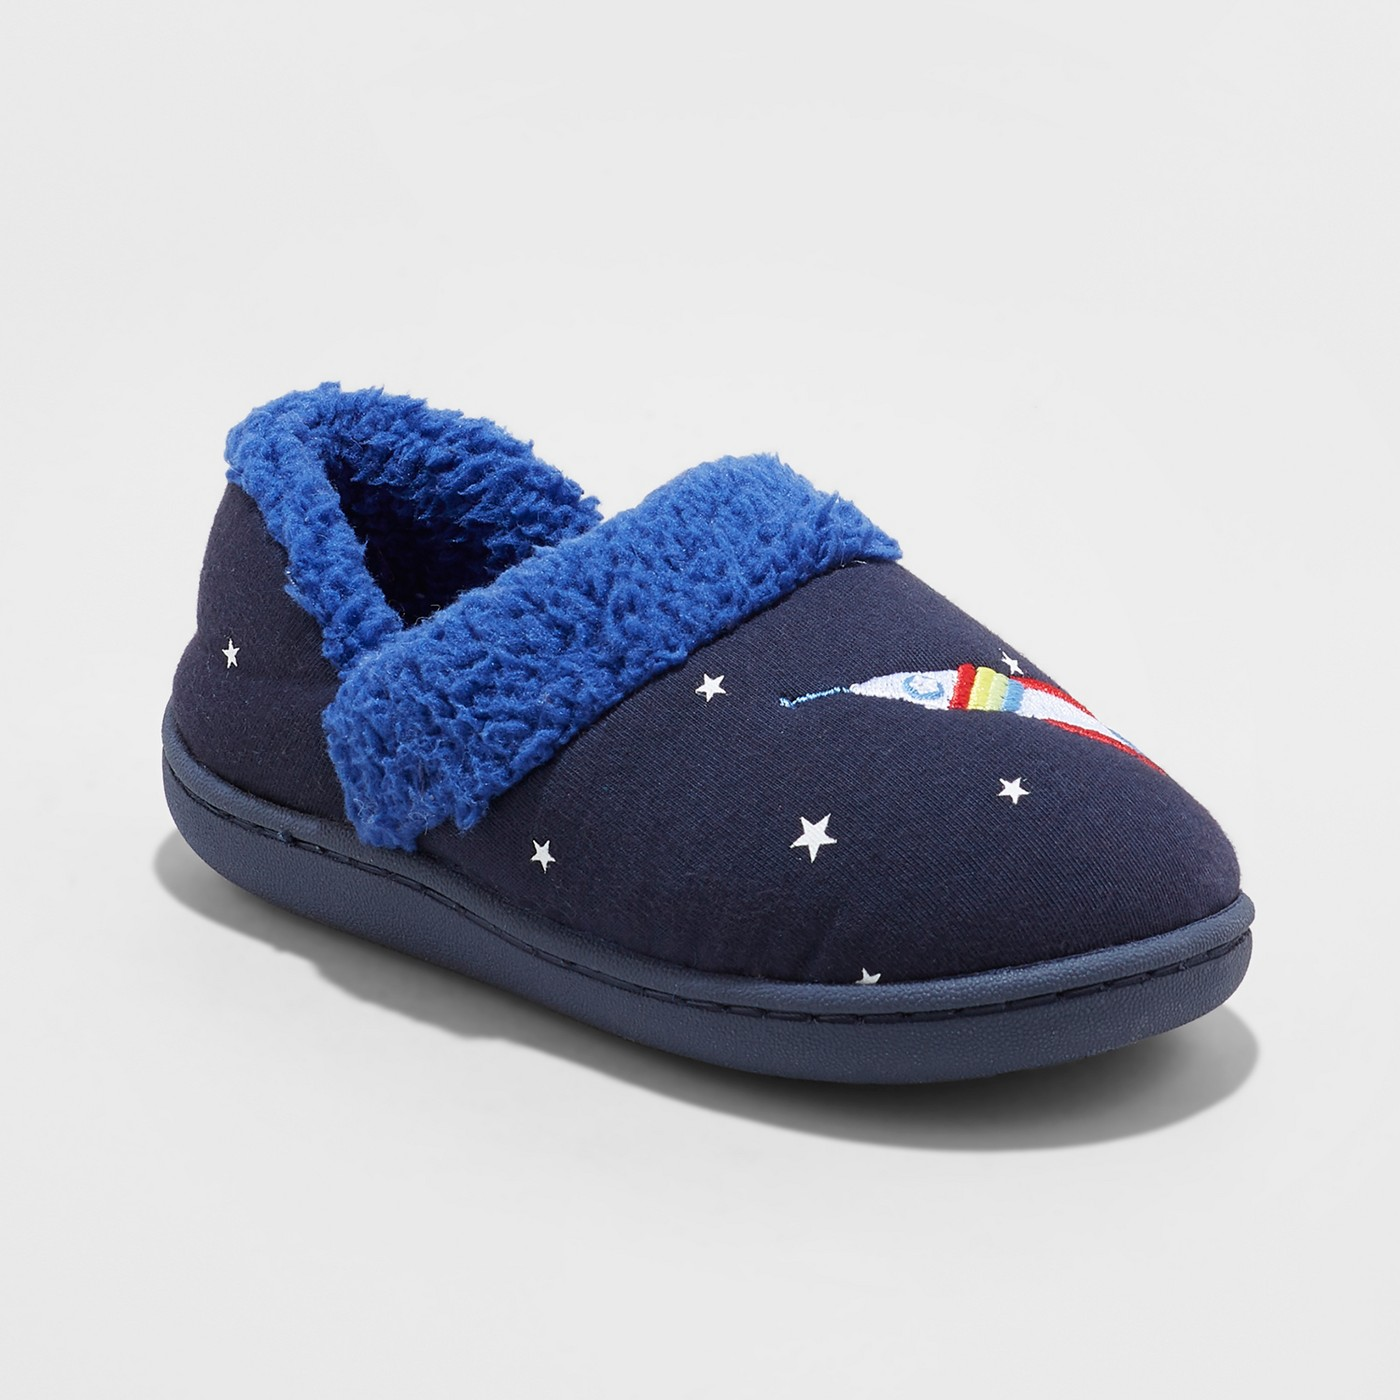 Toddler Boys' Mercury Outer Space Slipper - Cat & Jack™ Navy - image 1 of 4